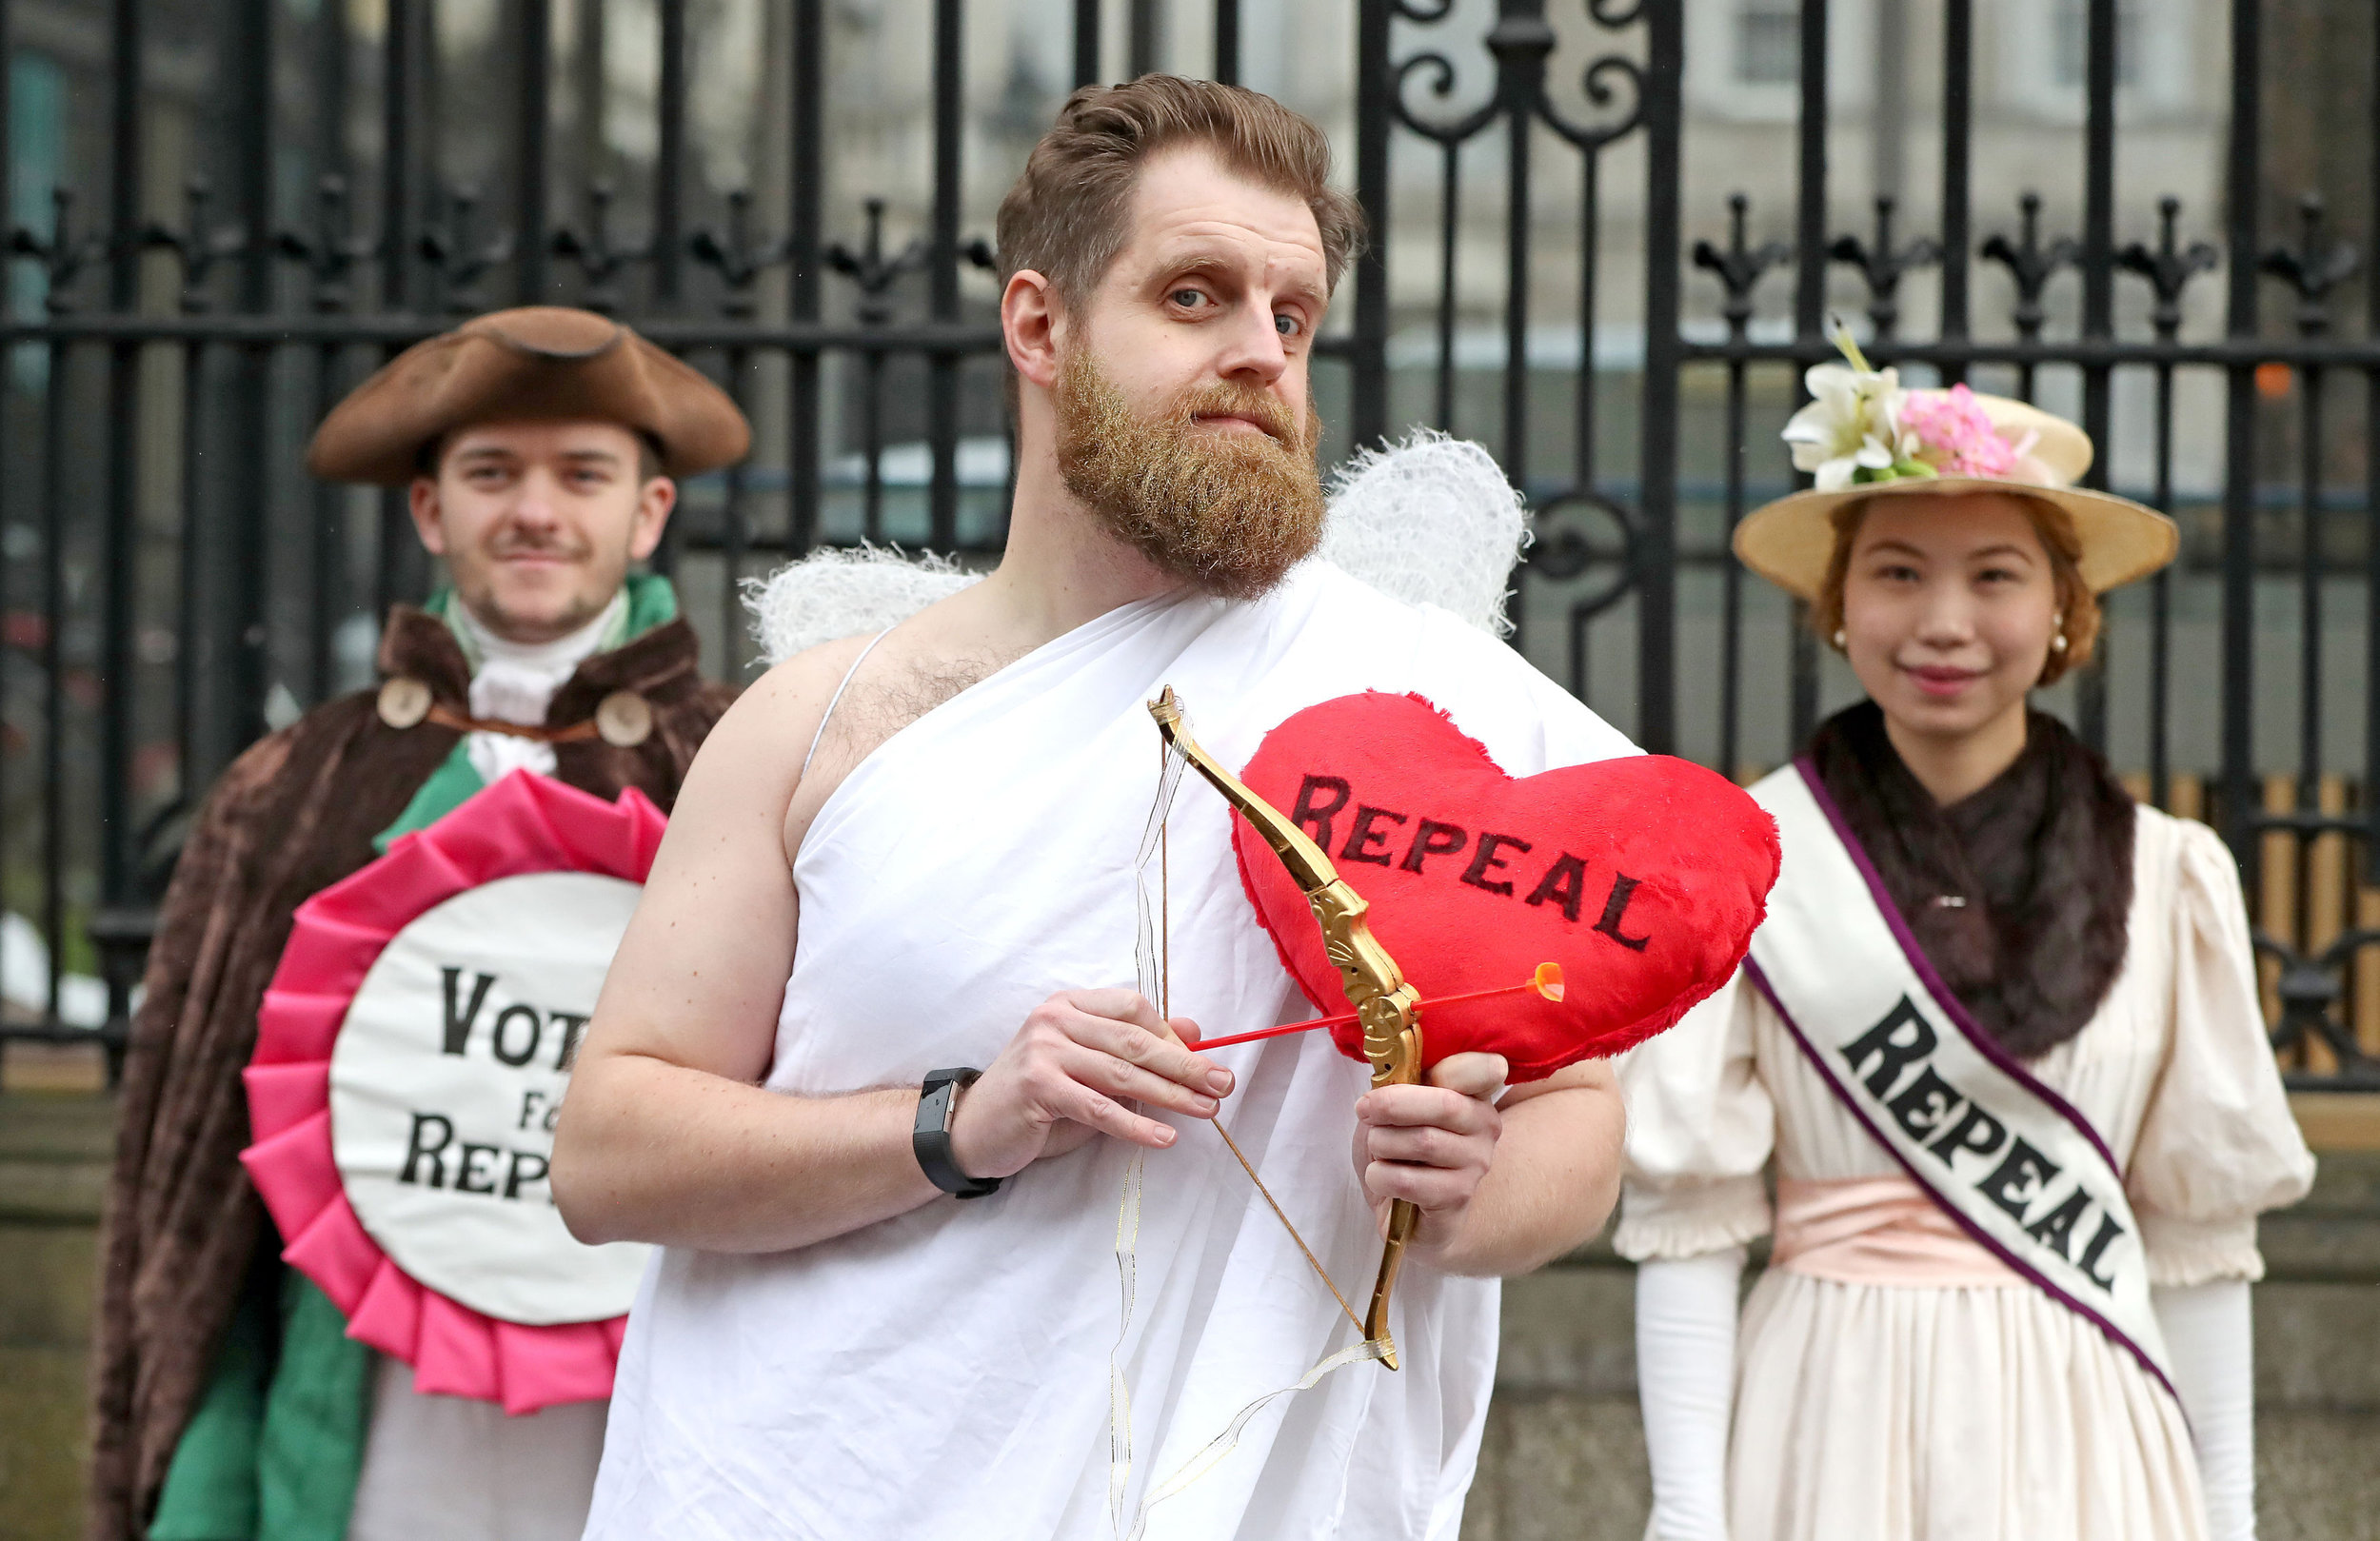 Abortion Rights campaigners, (left to right) Morgan Maher, Adam Murray and Lute Alraad during a protest outside Leinster House in Dublin. Picture: Niall Carson/PA Wire